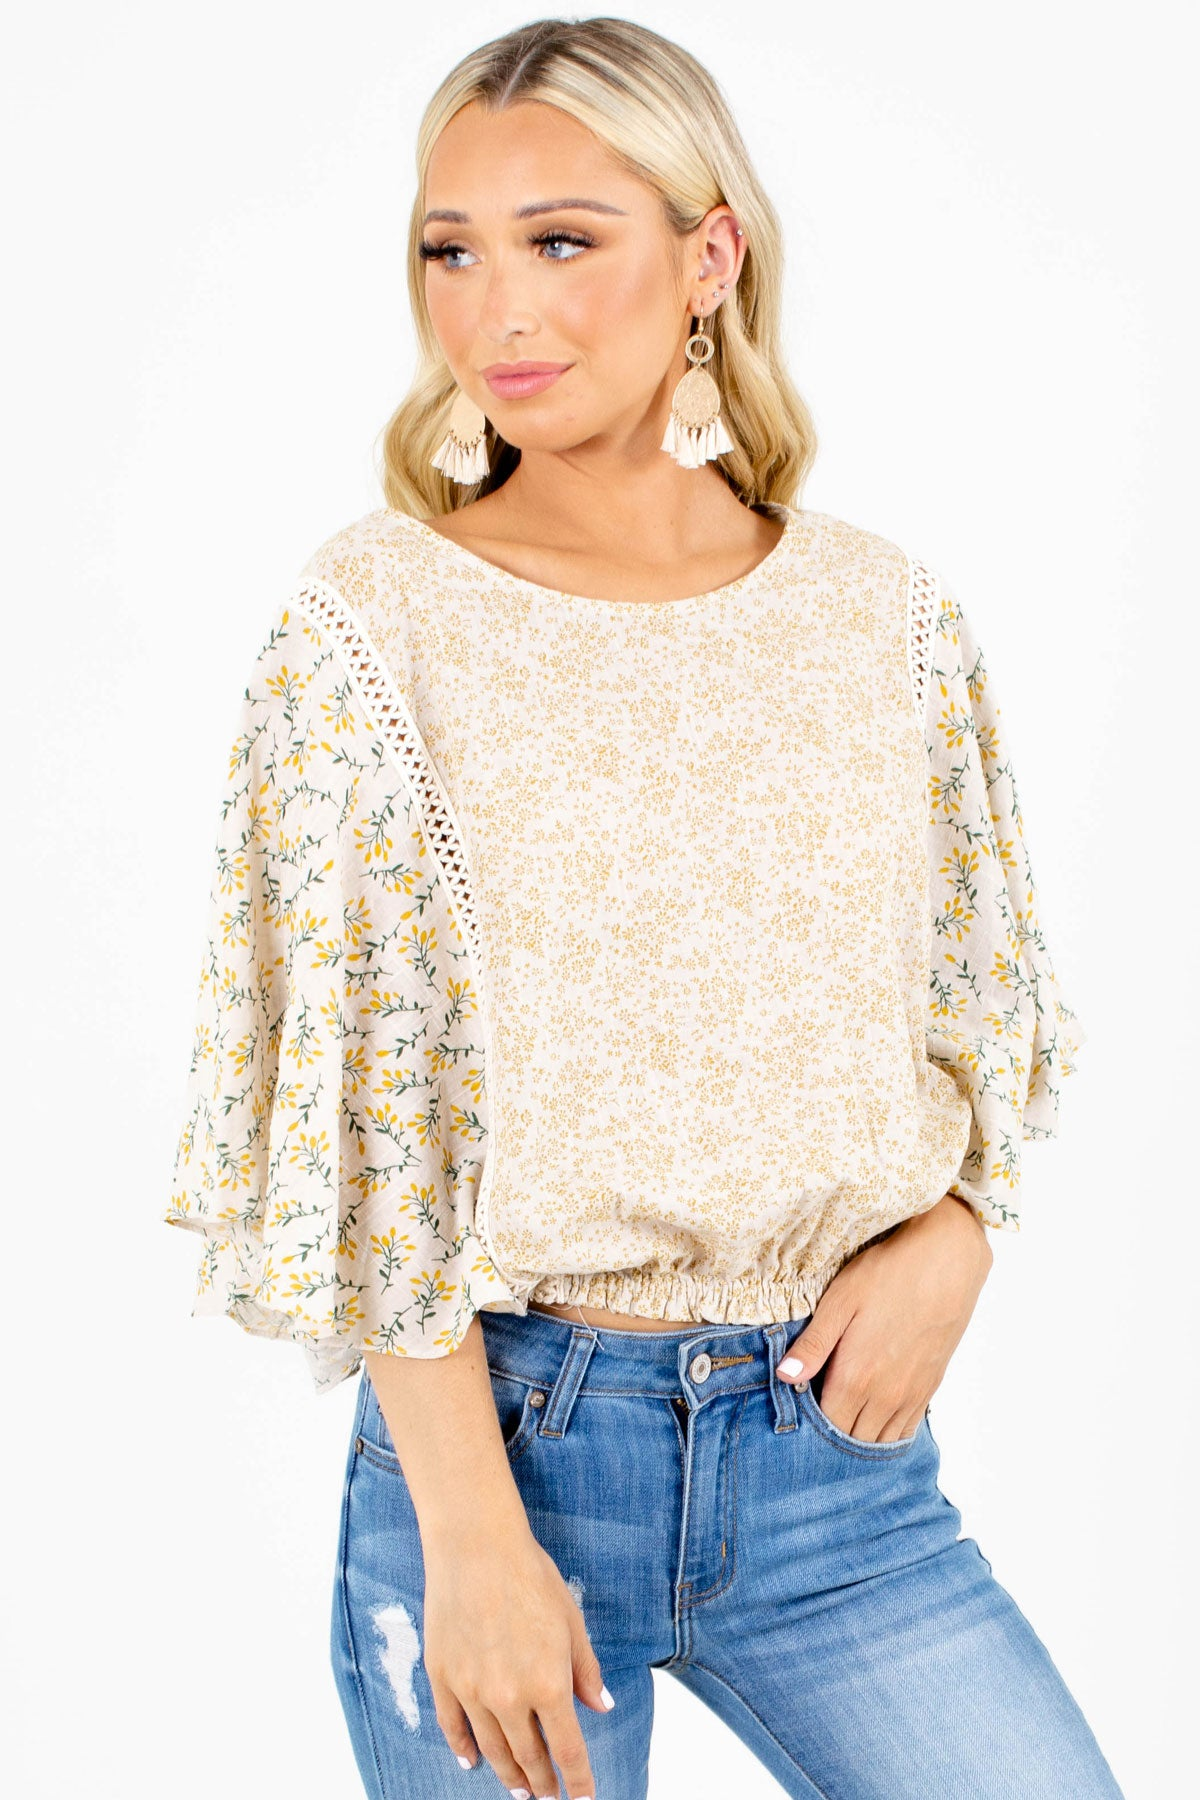 Beige Floral Patterned Boutique Tops for Women